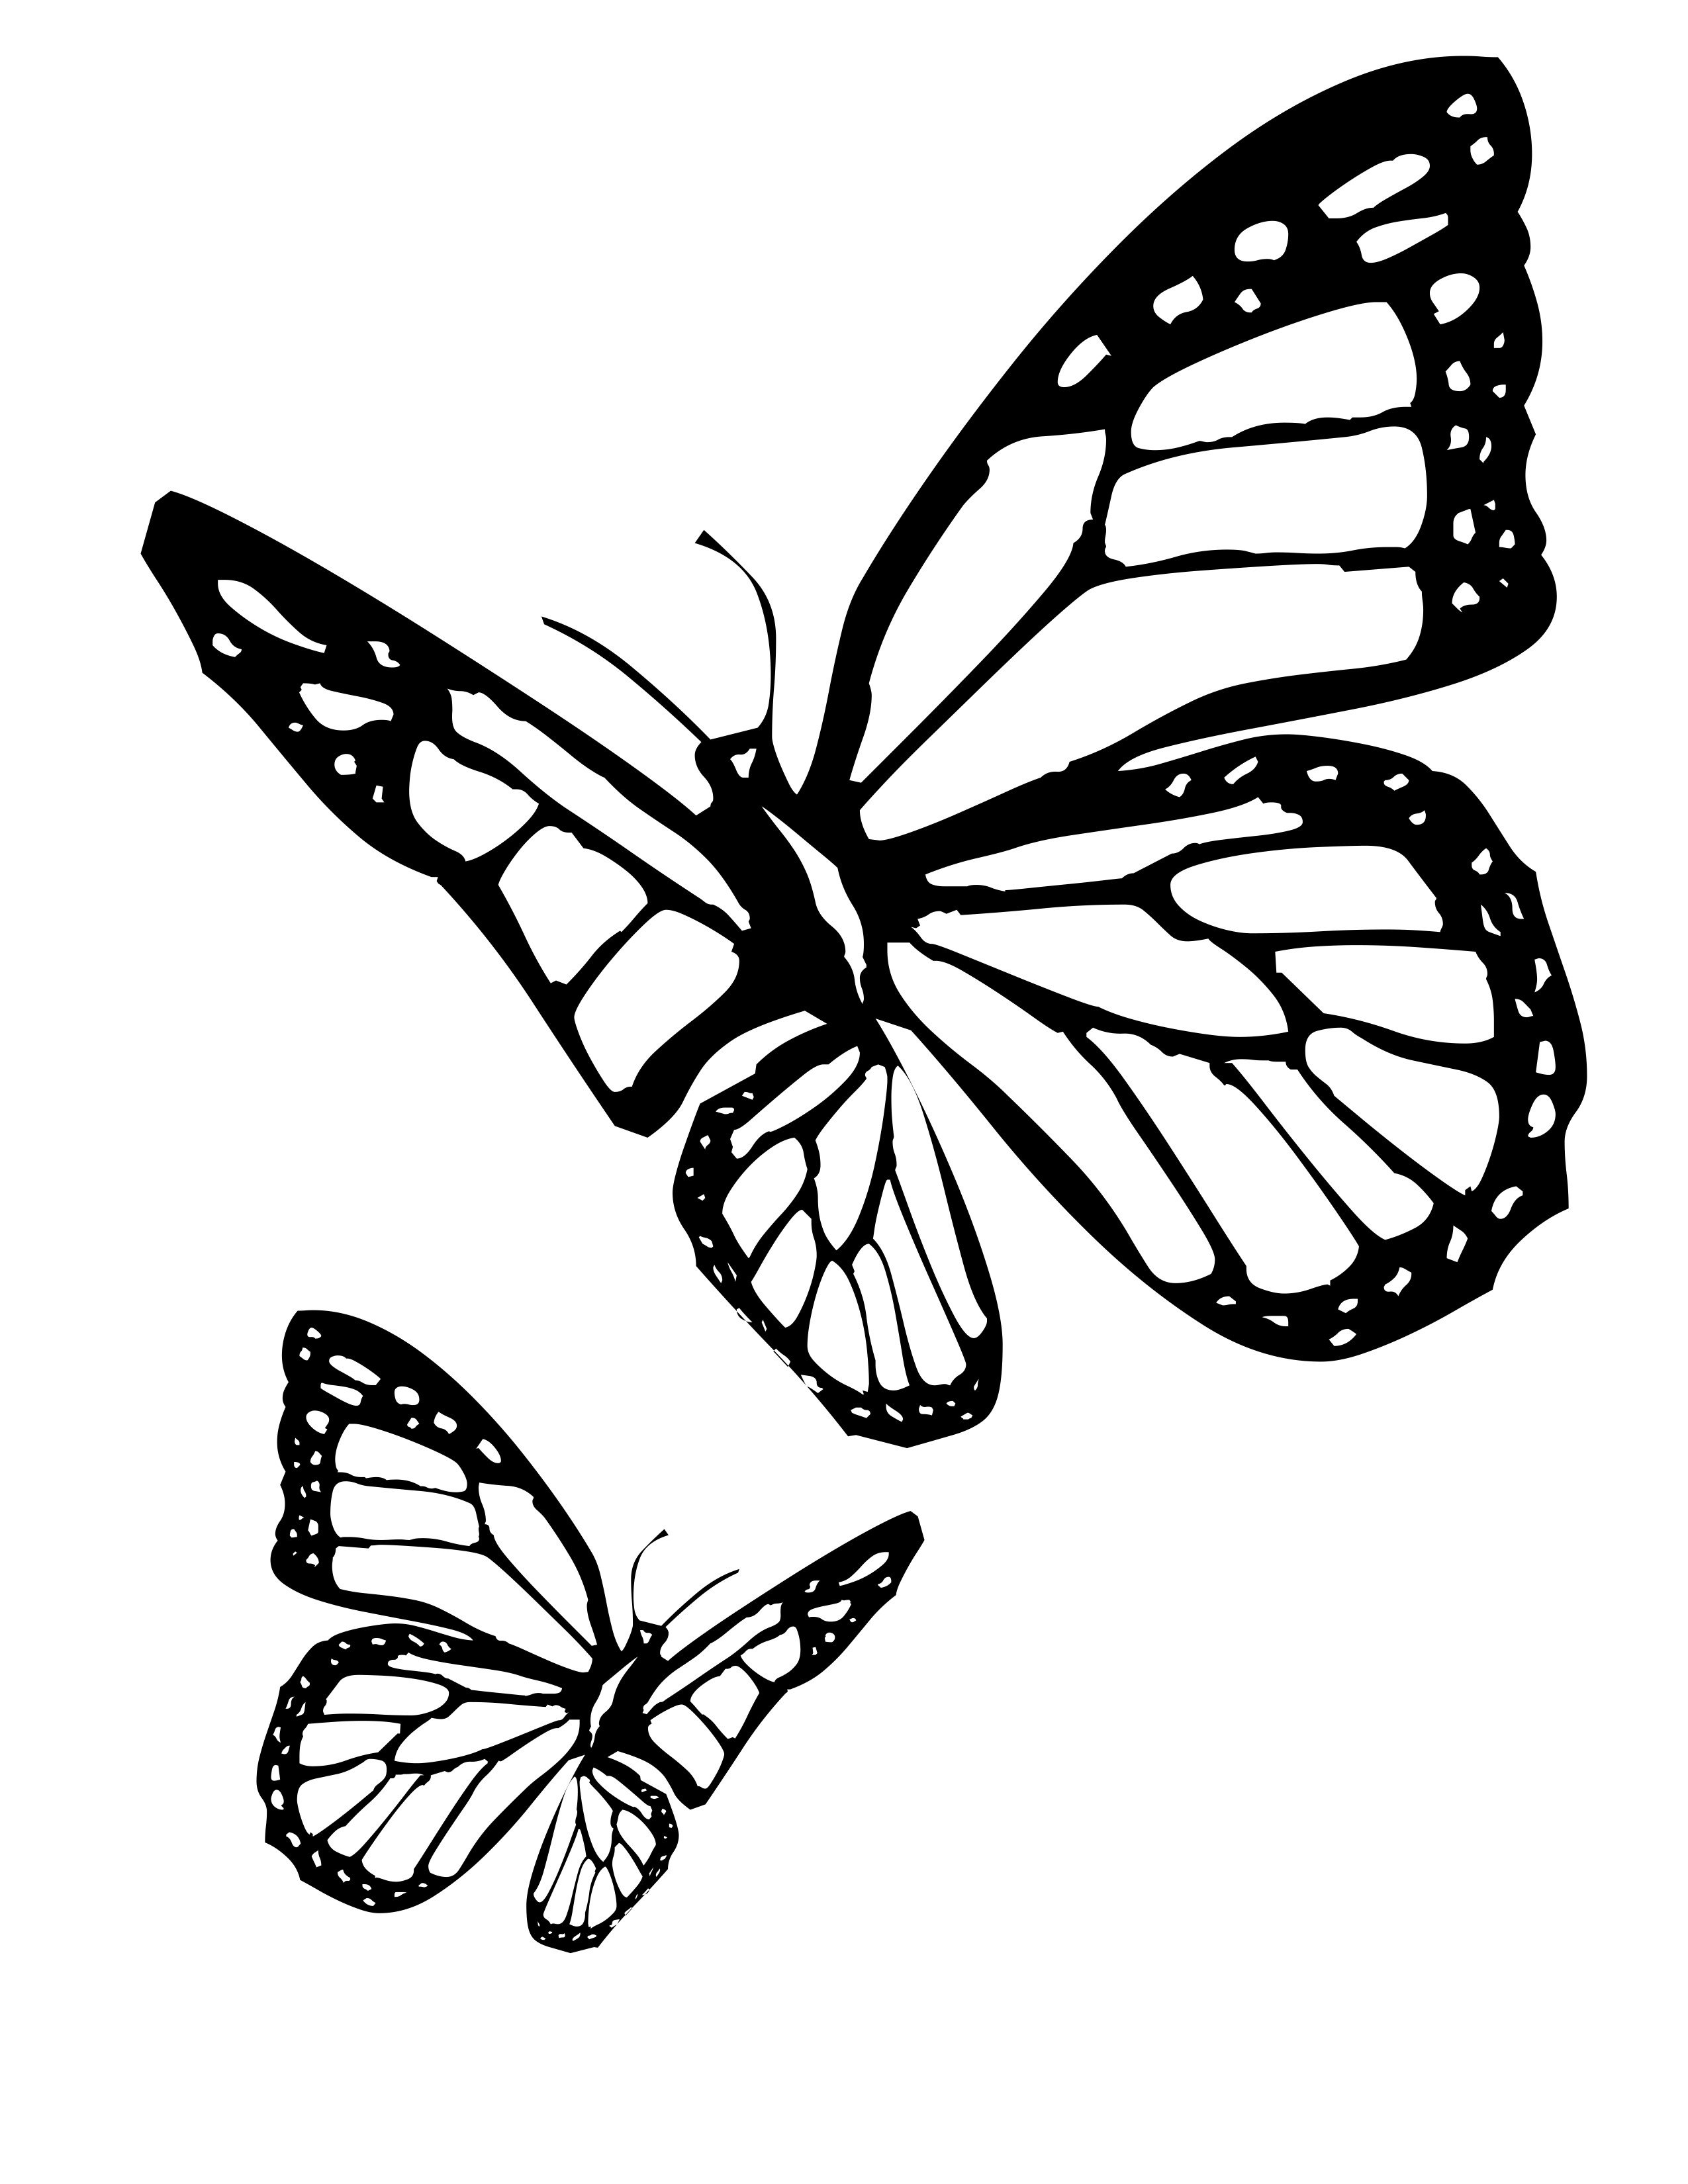 butterflies coloring page free printable butterfly coloring pages for kids page butterflies coloring